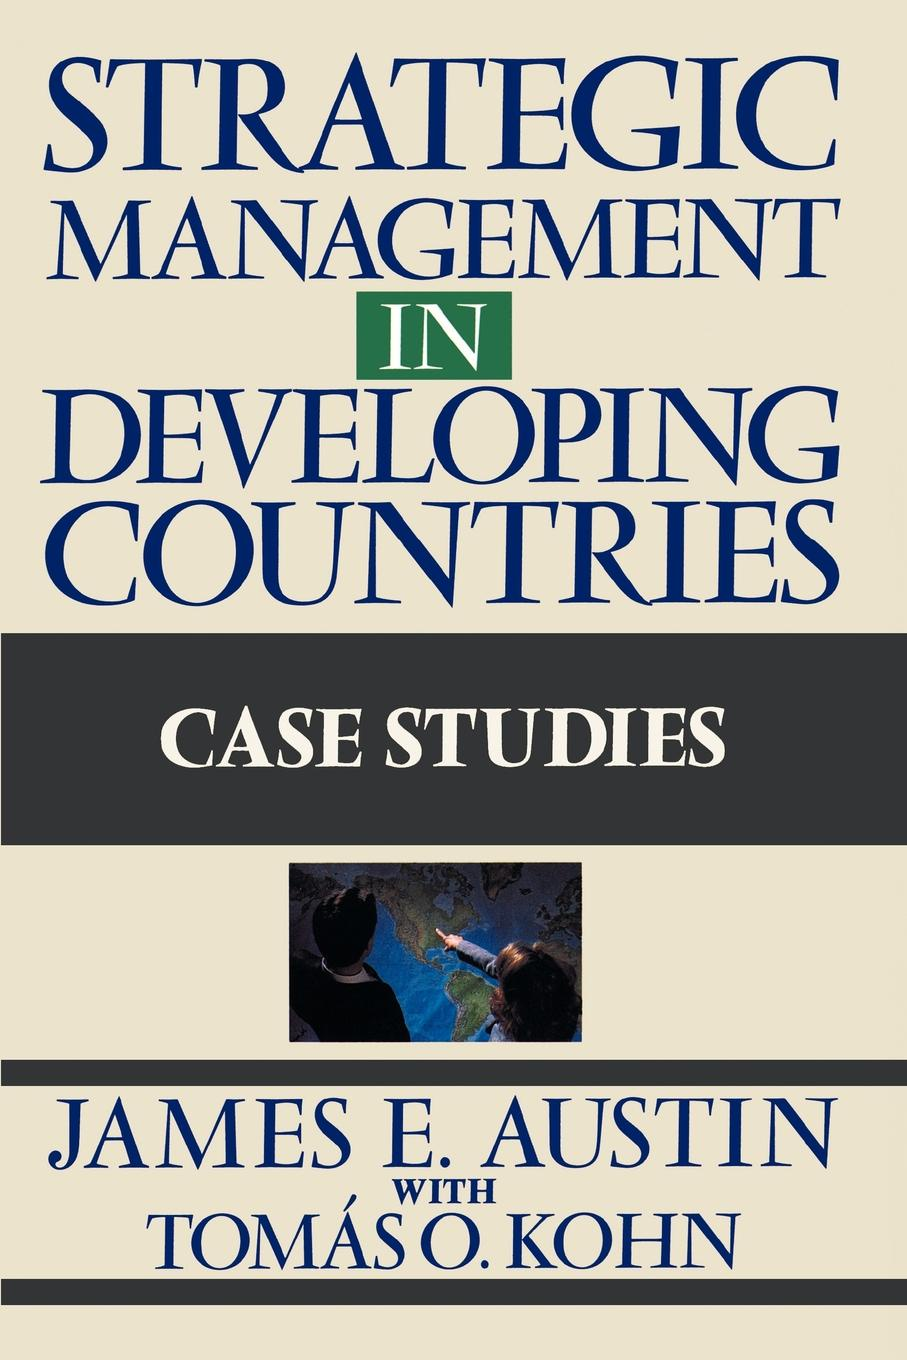 James E. Austin Strategic Management in Developing Countries. Case Studies optimal health strategy in poorest developing countries